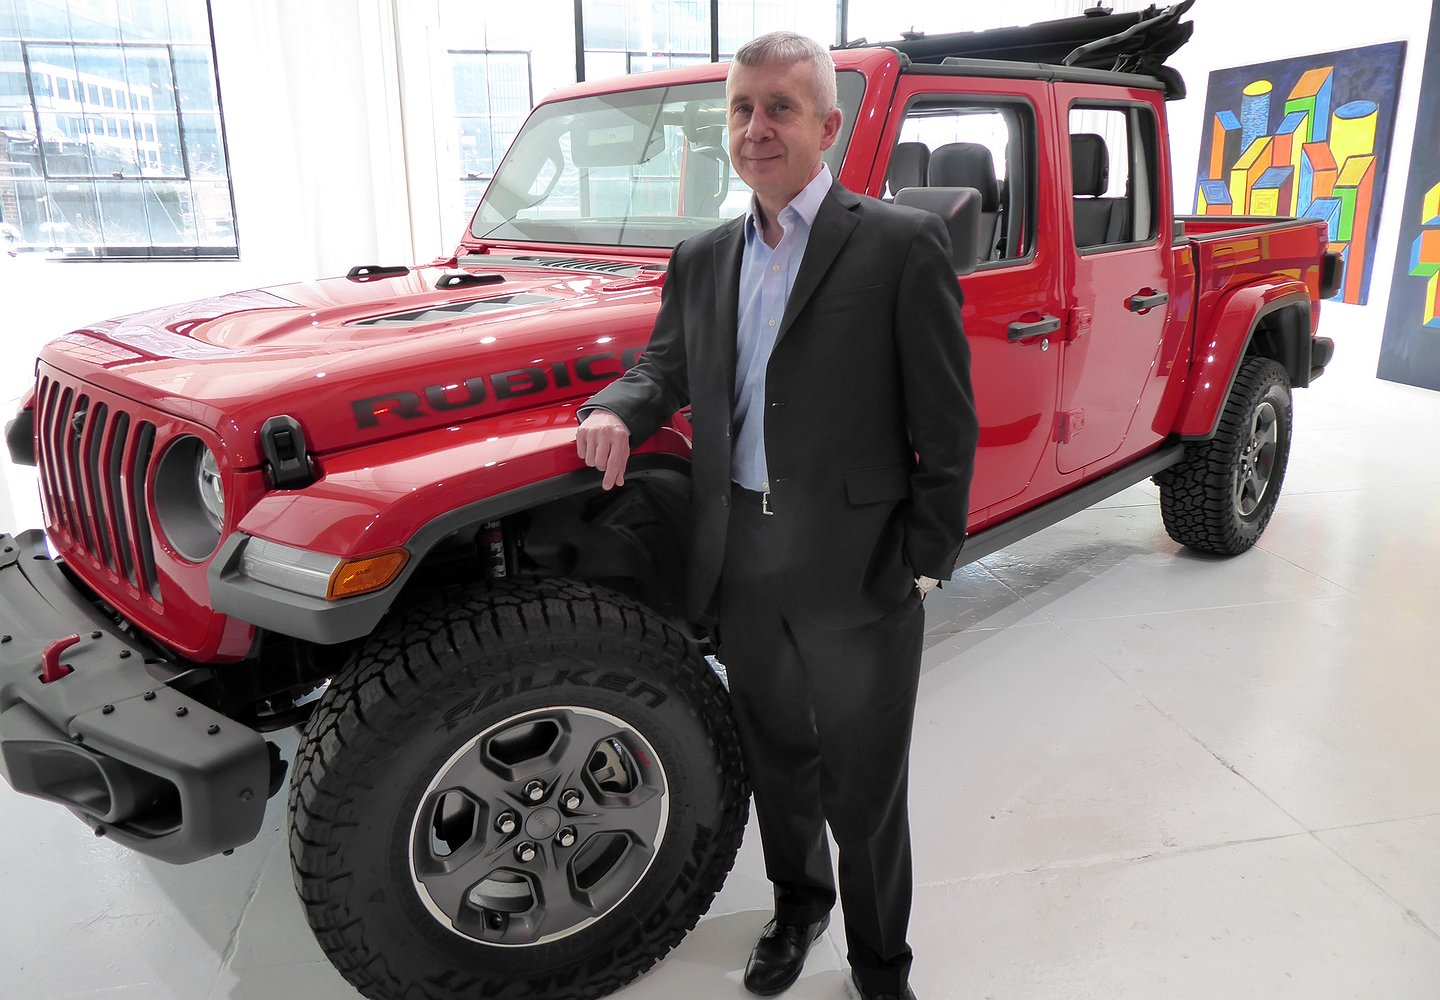 Jeep's Marketing Manager: It's the Real SUVs Versus the Pretenders